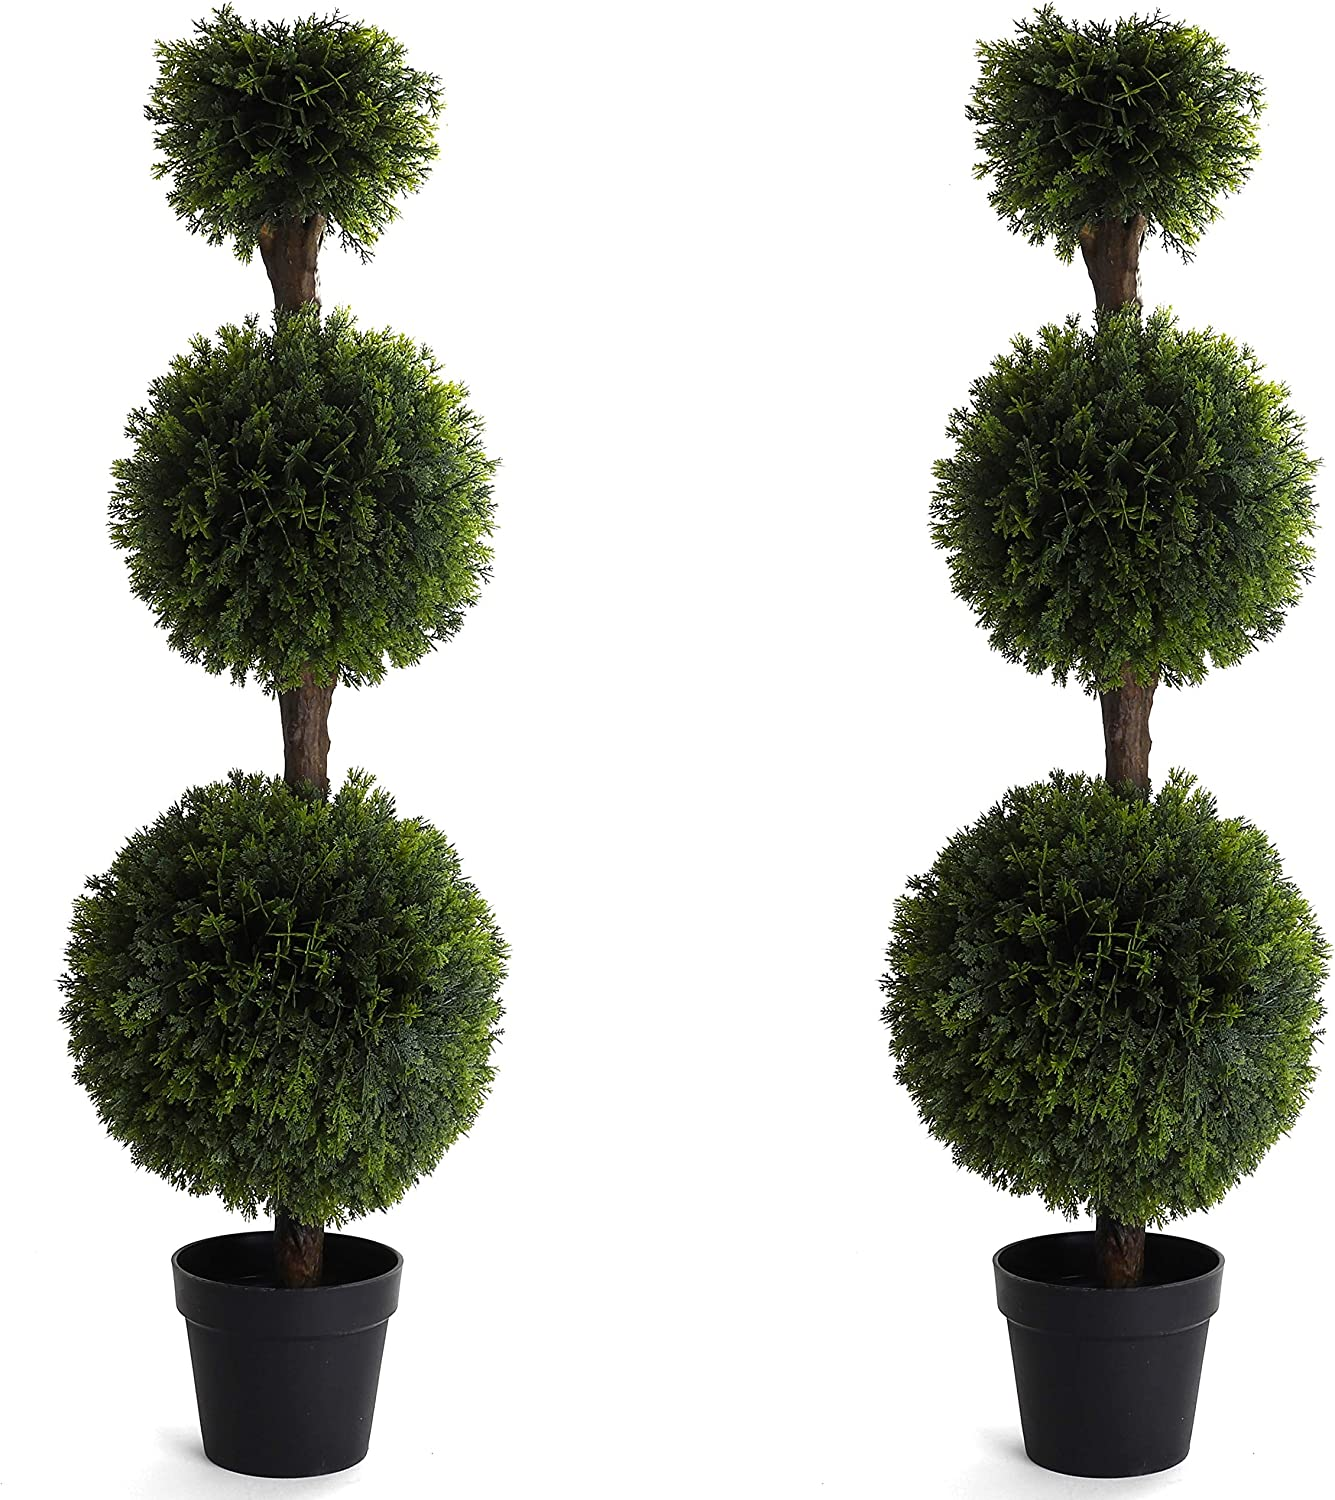 momoplant Artificial Cypress Ball Plant Round Cedar Cypress Topiary Tree Plants Indoor Outdoor Realistic Potted Shrub D/écor 20.8 Inchs With Black Pot